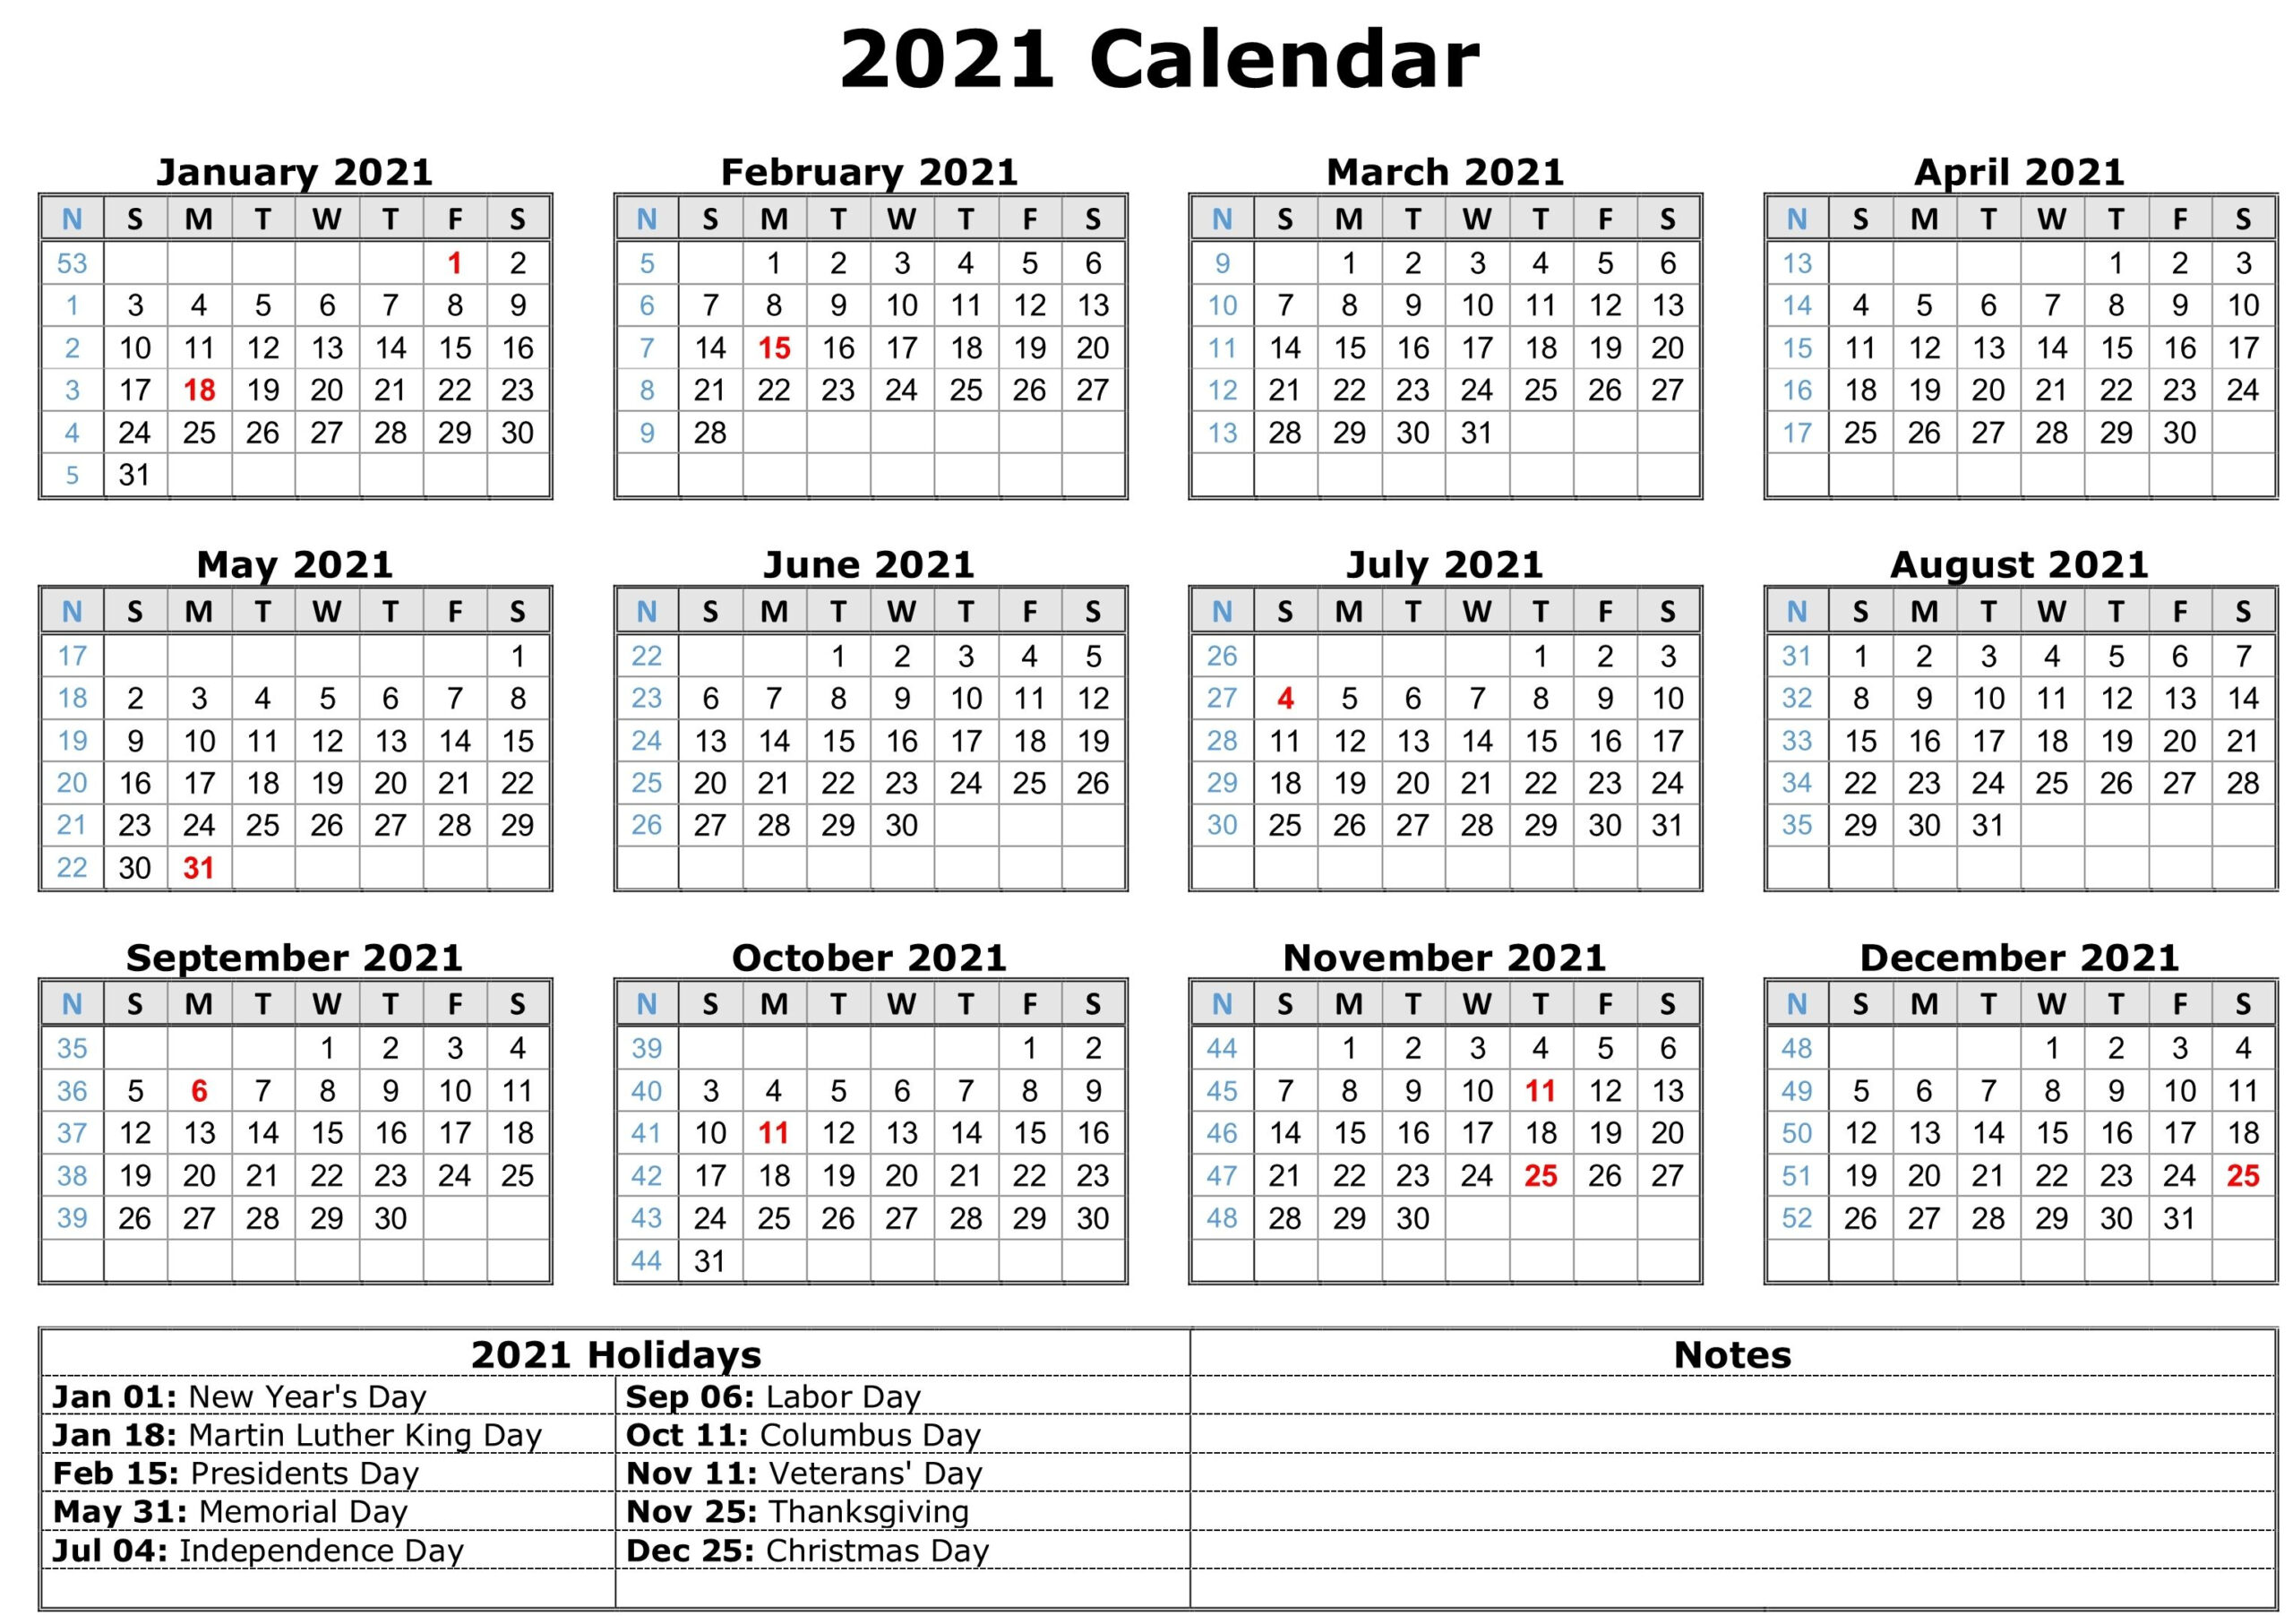 2021 Calendar With Holidays | Free Calendar Template throughout Free Print 2021 Calendars Without Downloading